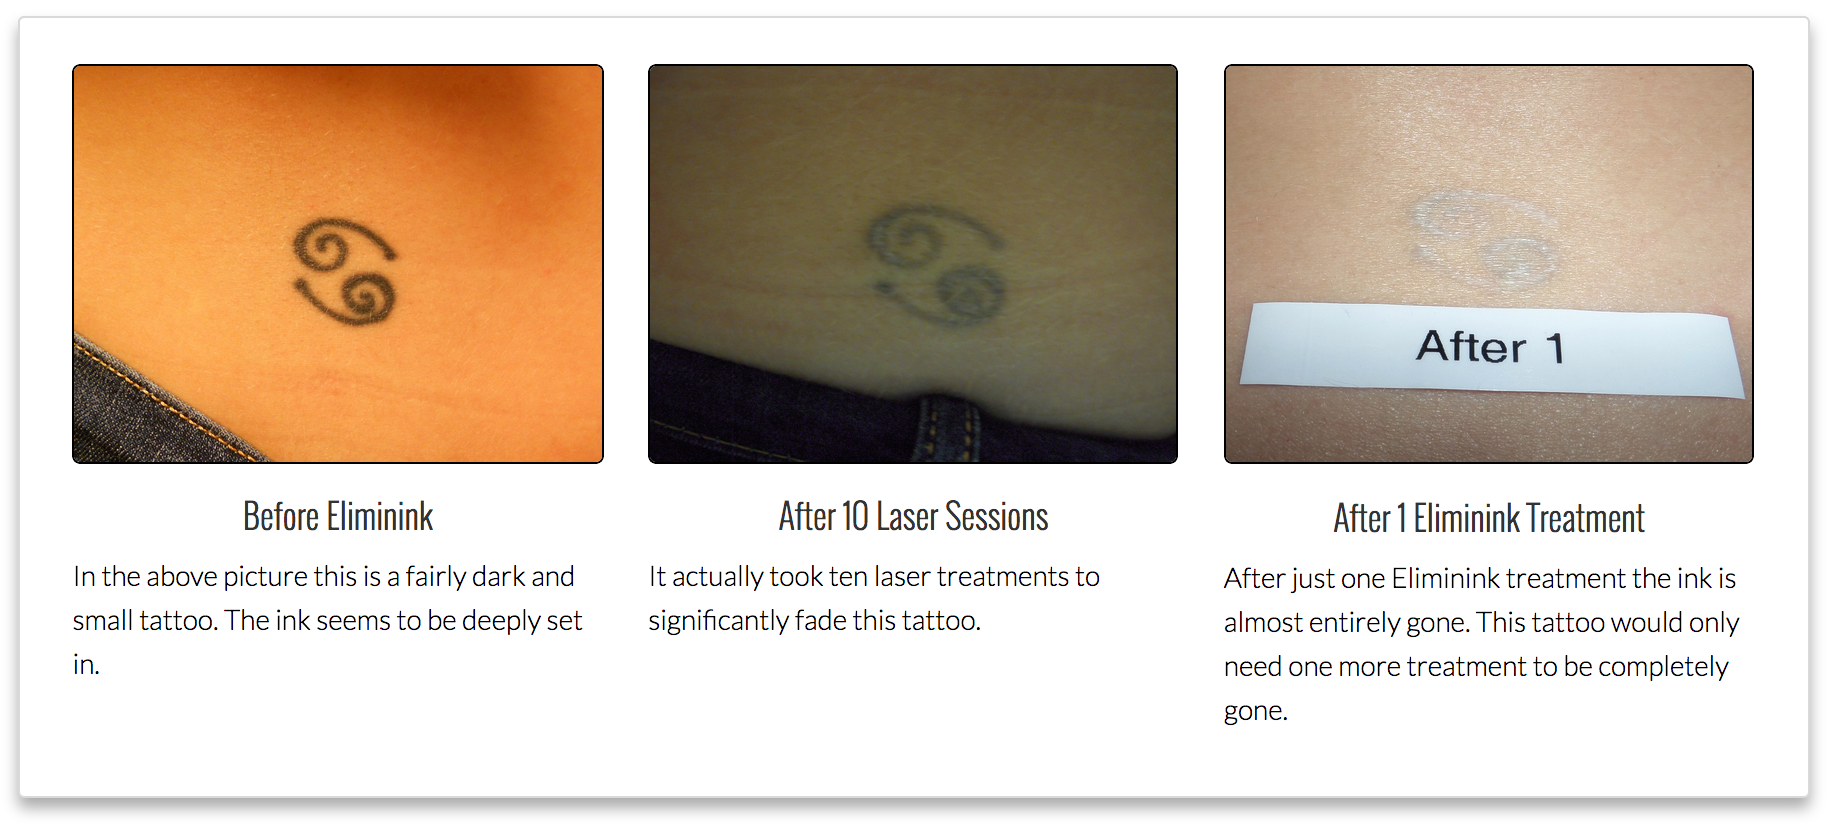 Eliminink Before And After Tattoos Tattoo Removal Laser Tattoo